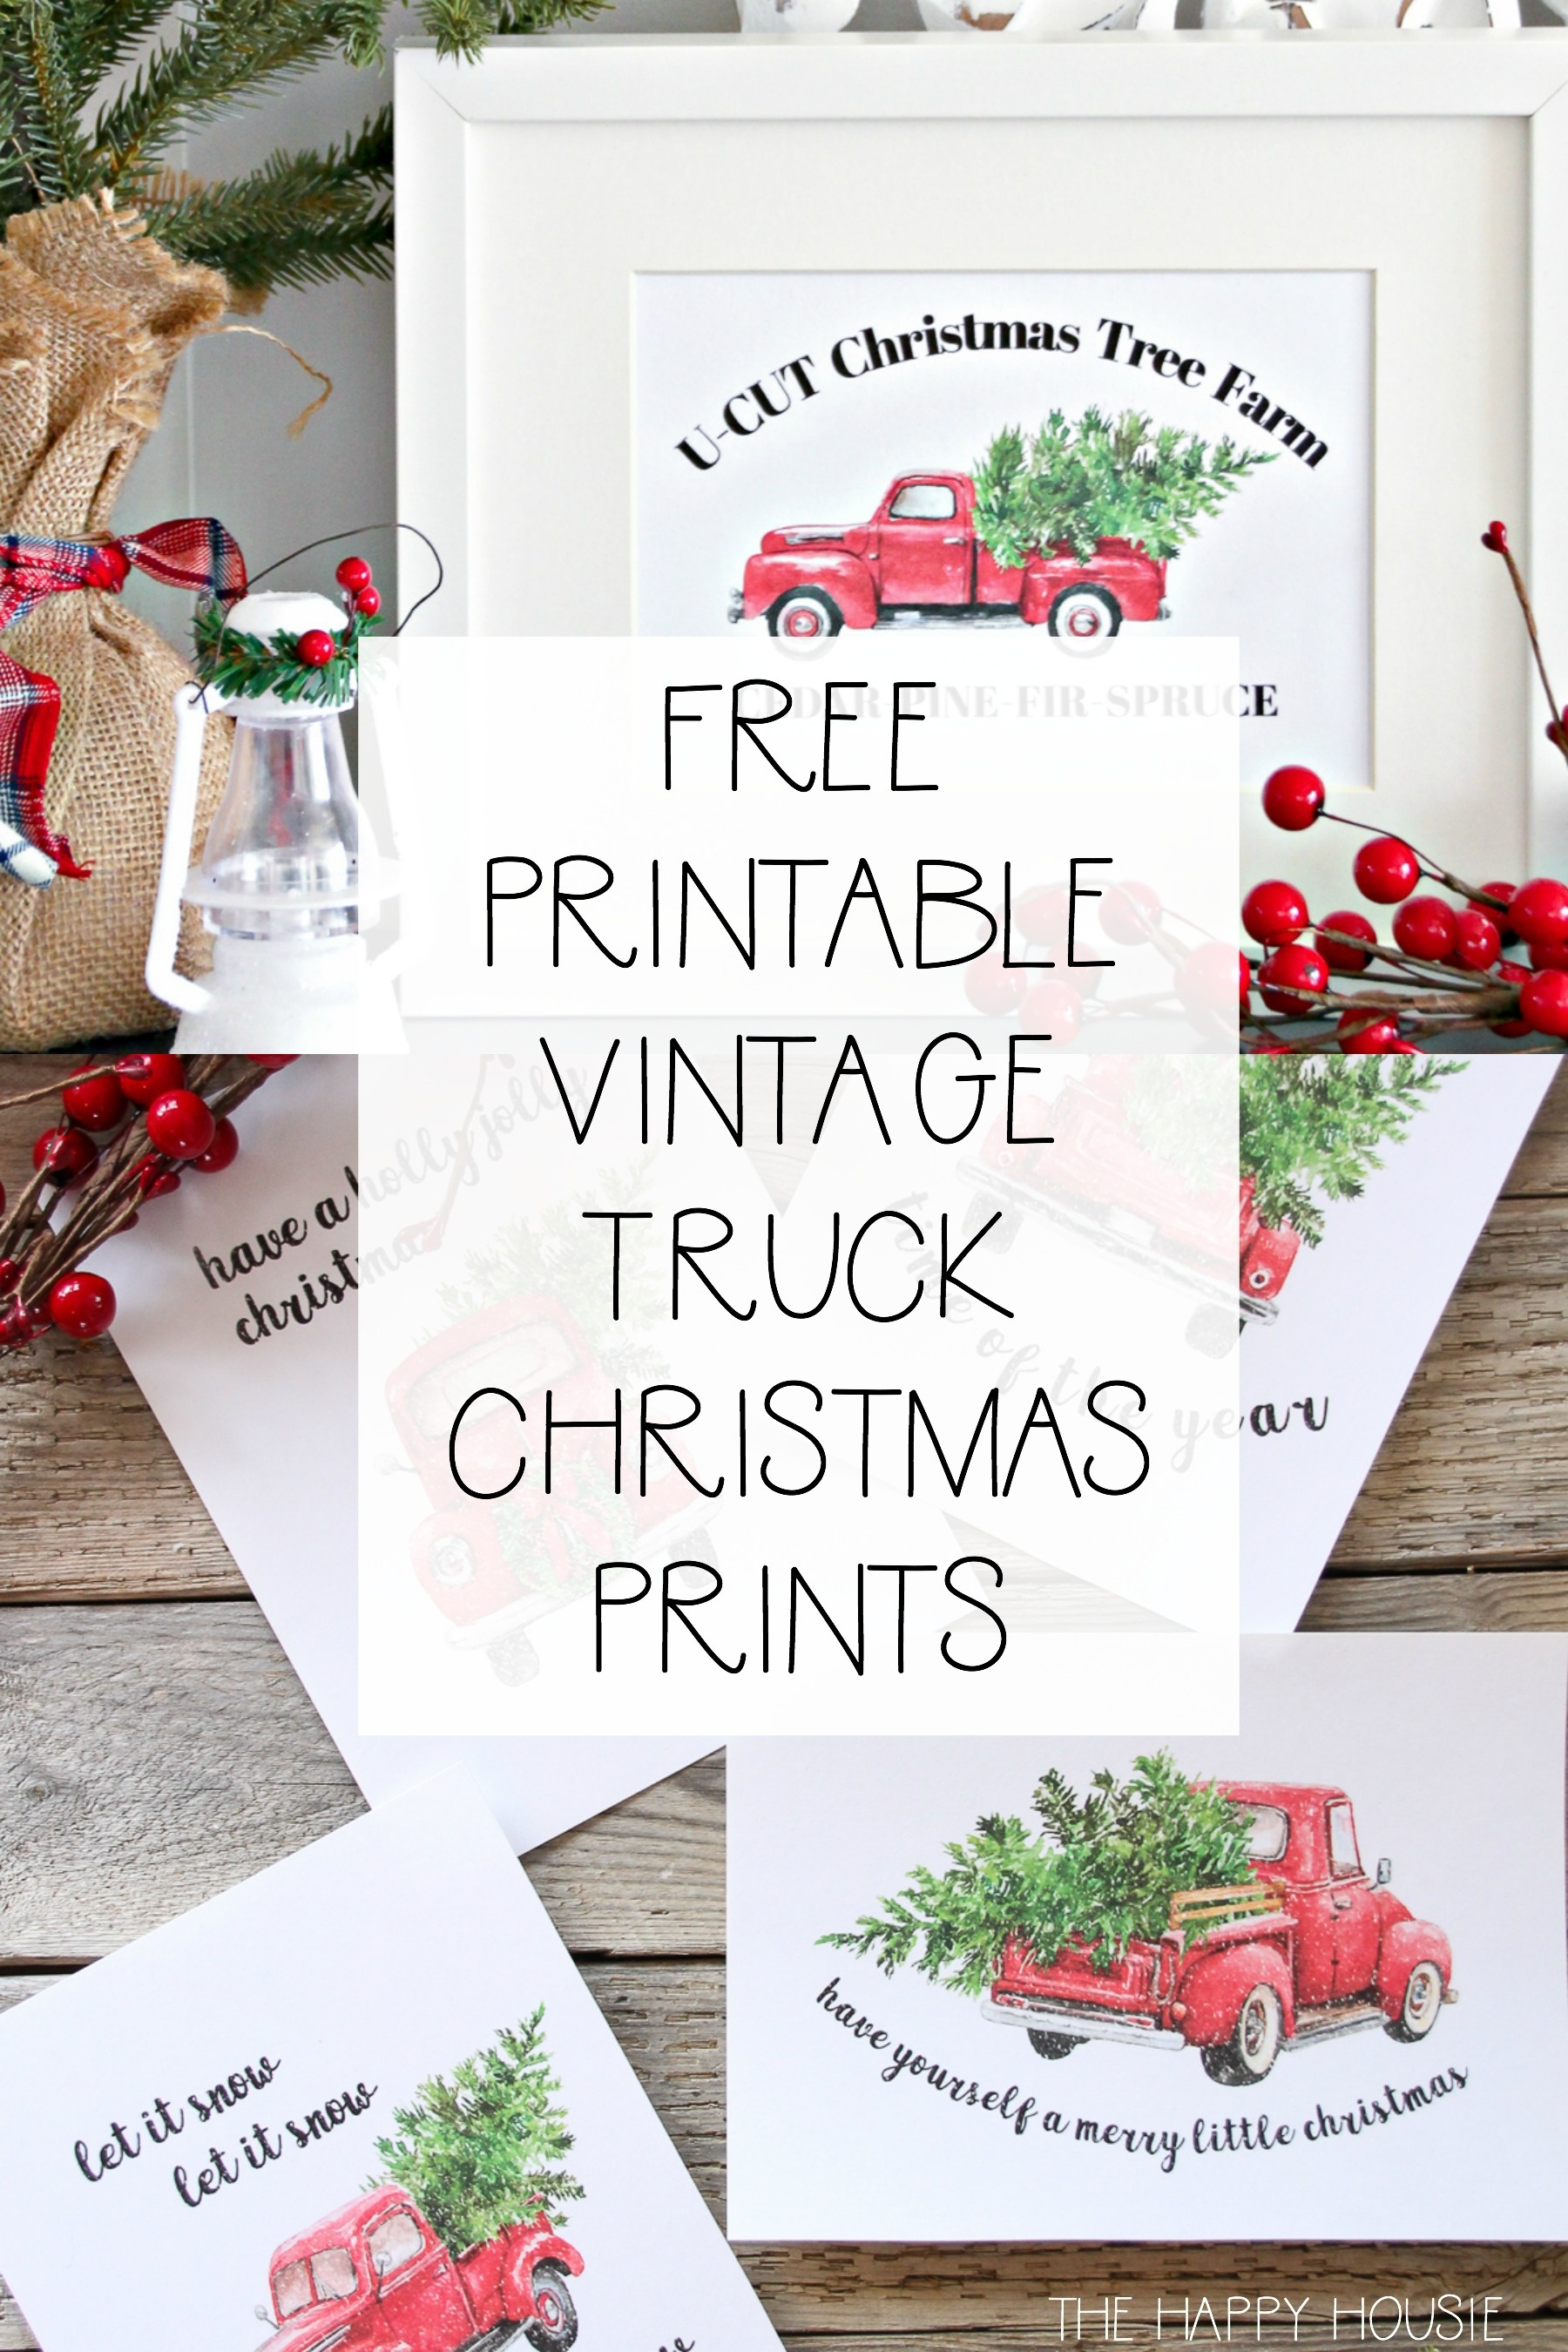 5 Free Vintage Truck Christmas Printables | The Happy Housie - Free Holiday Printables